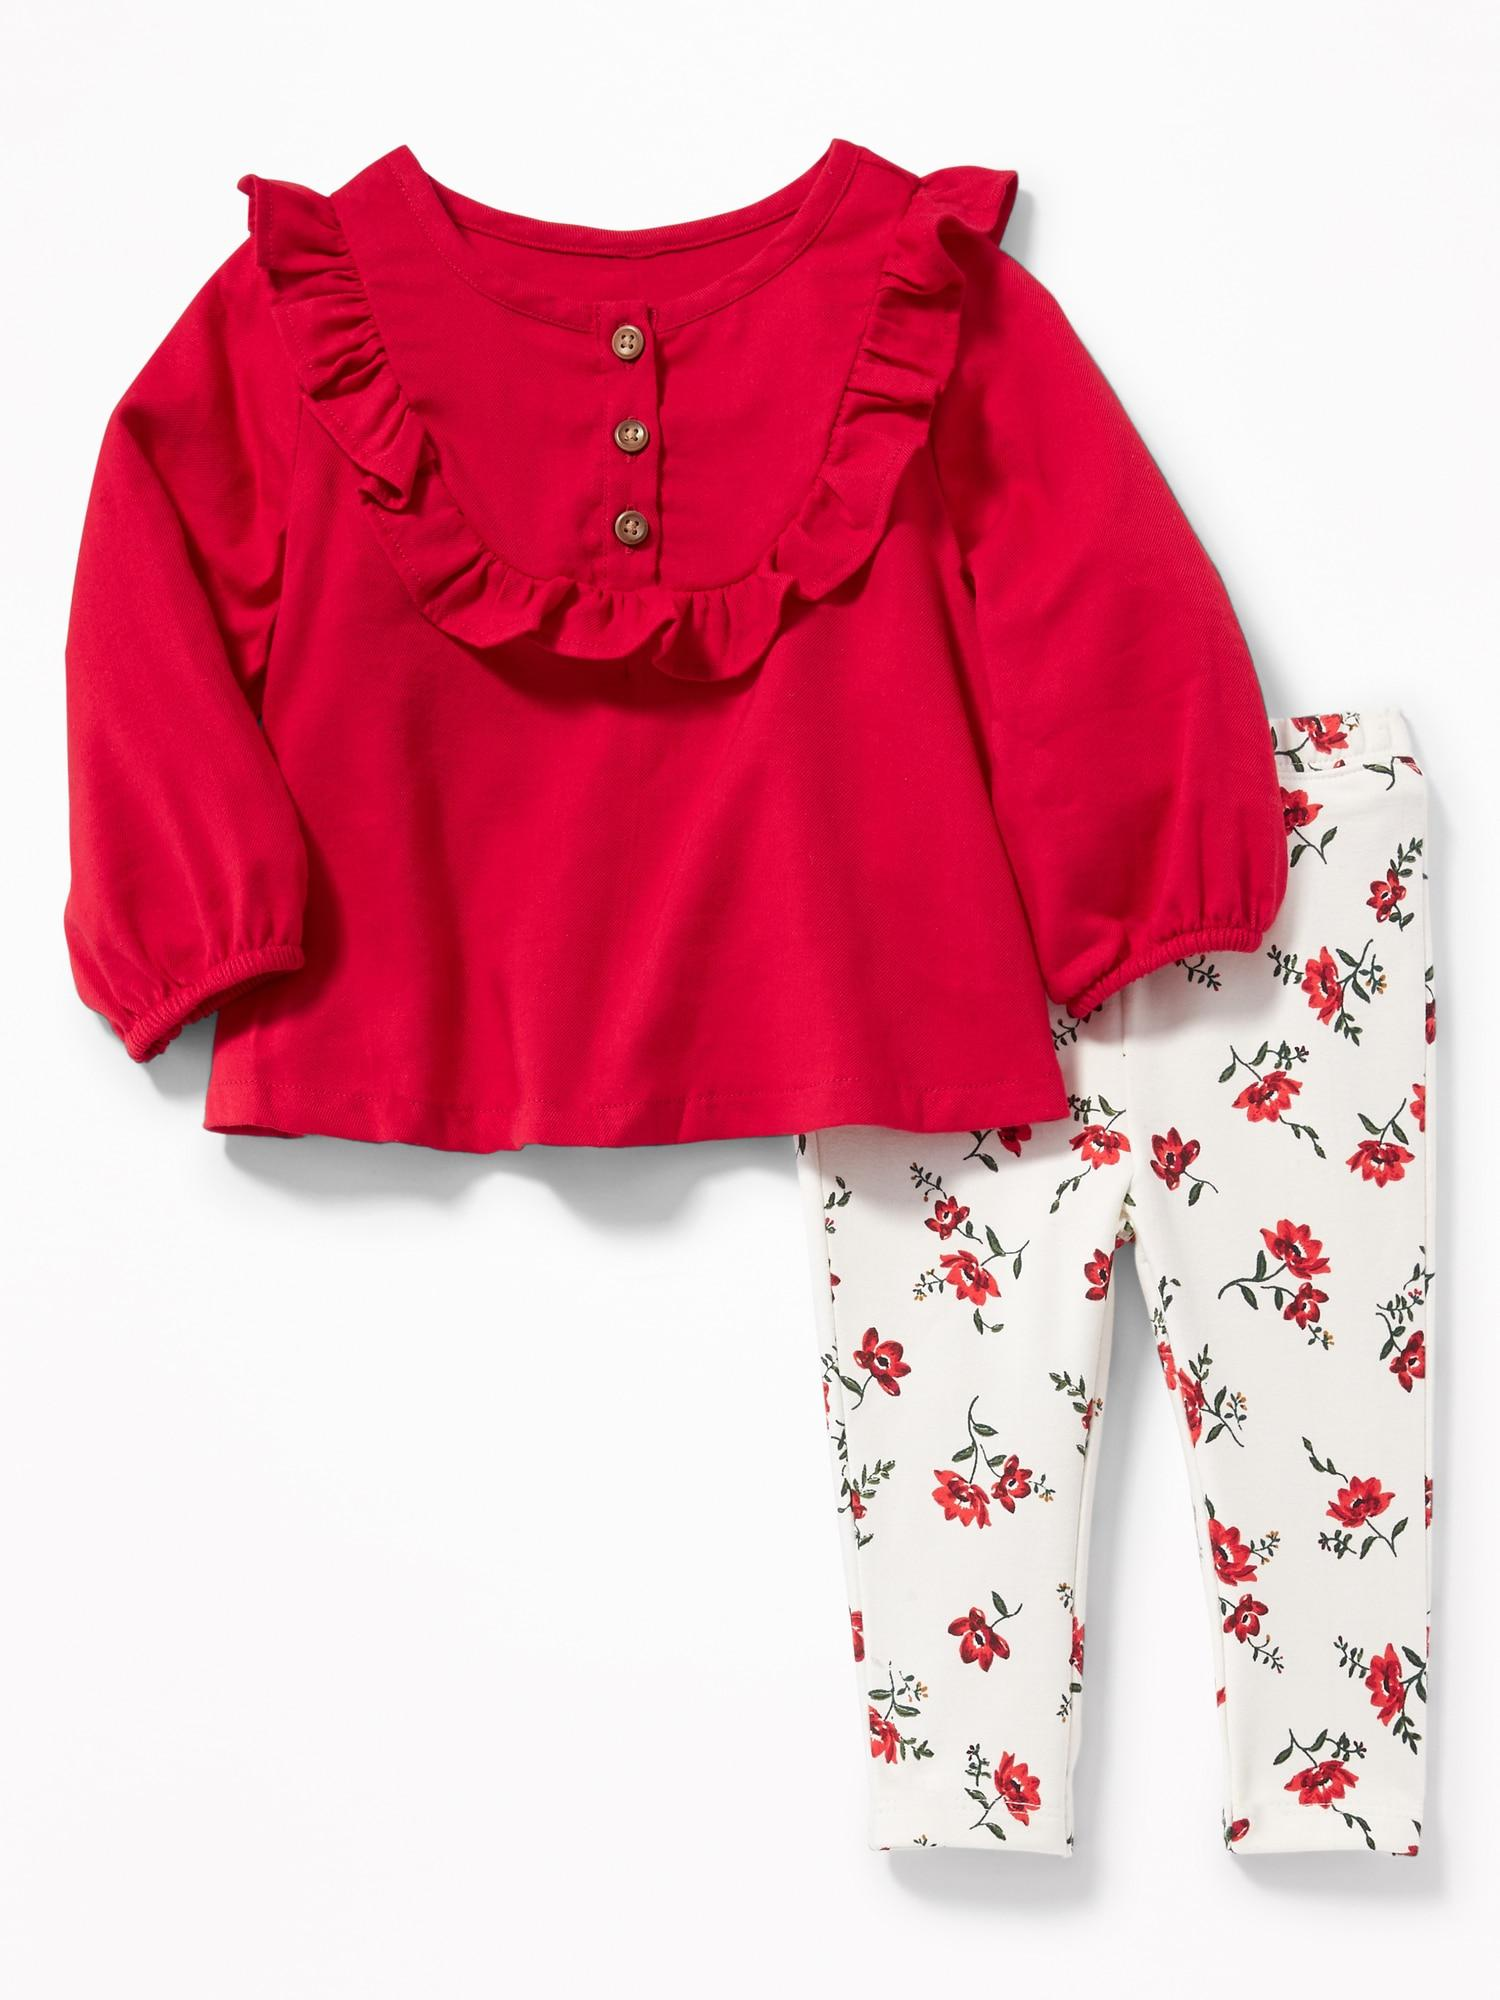 Lyst - Old Navy Ruffle-trim Top And Leggings Set in Red